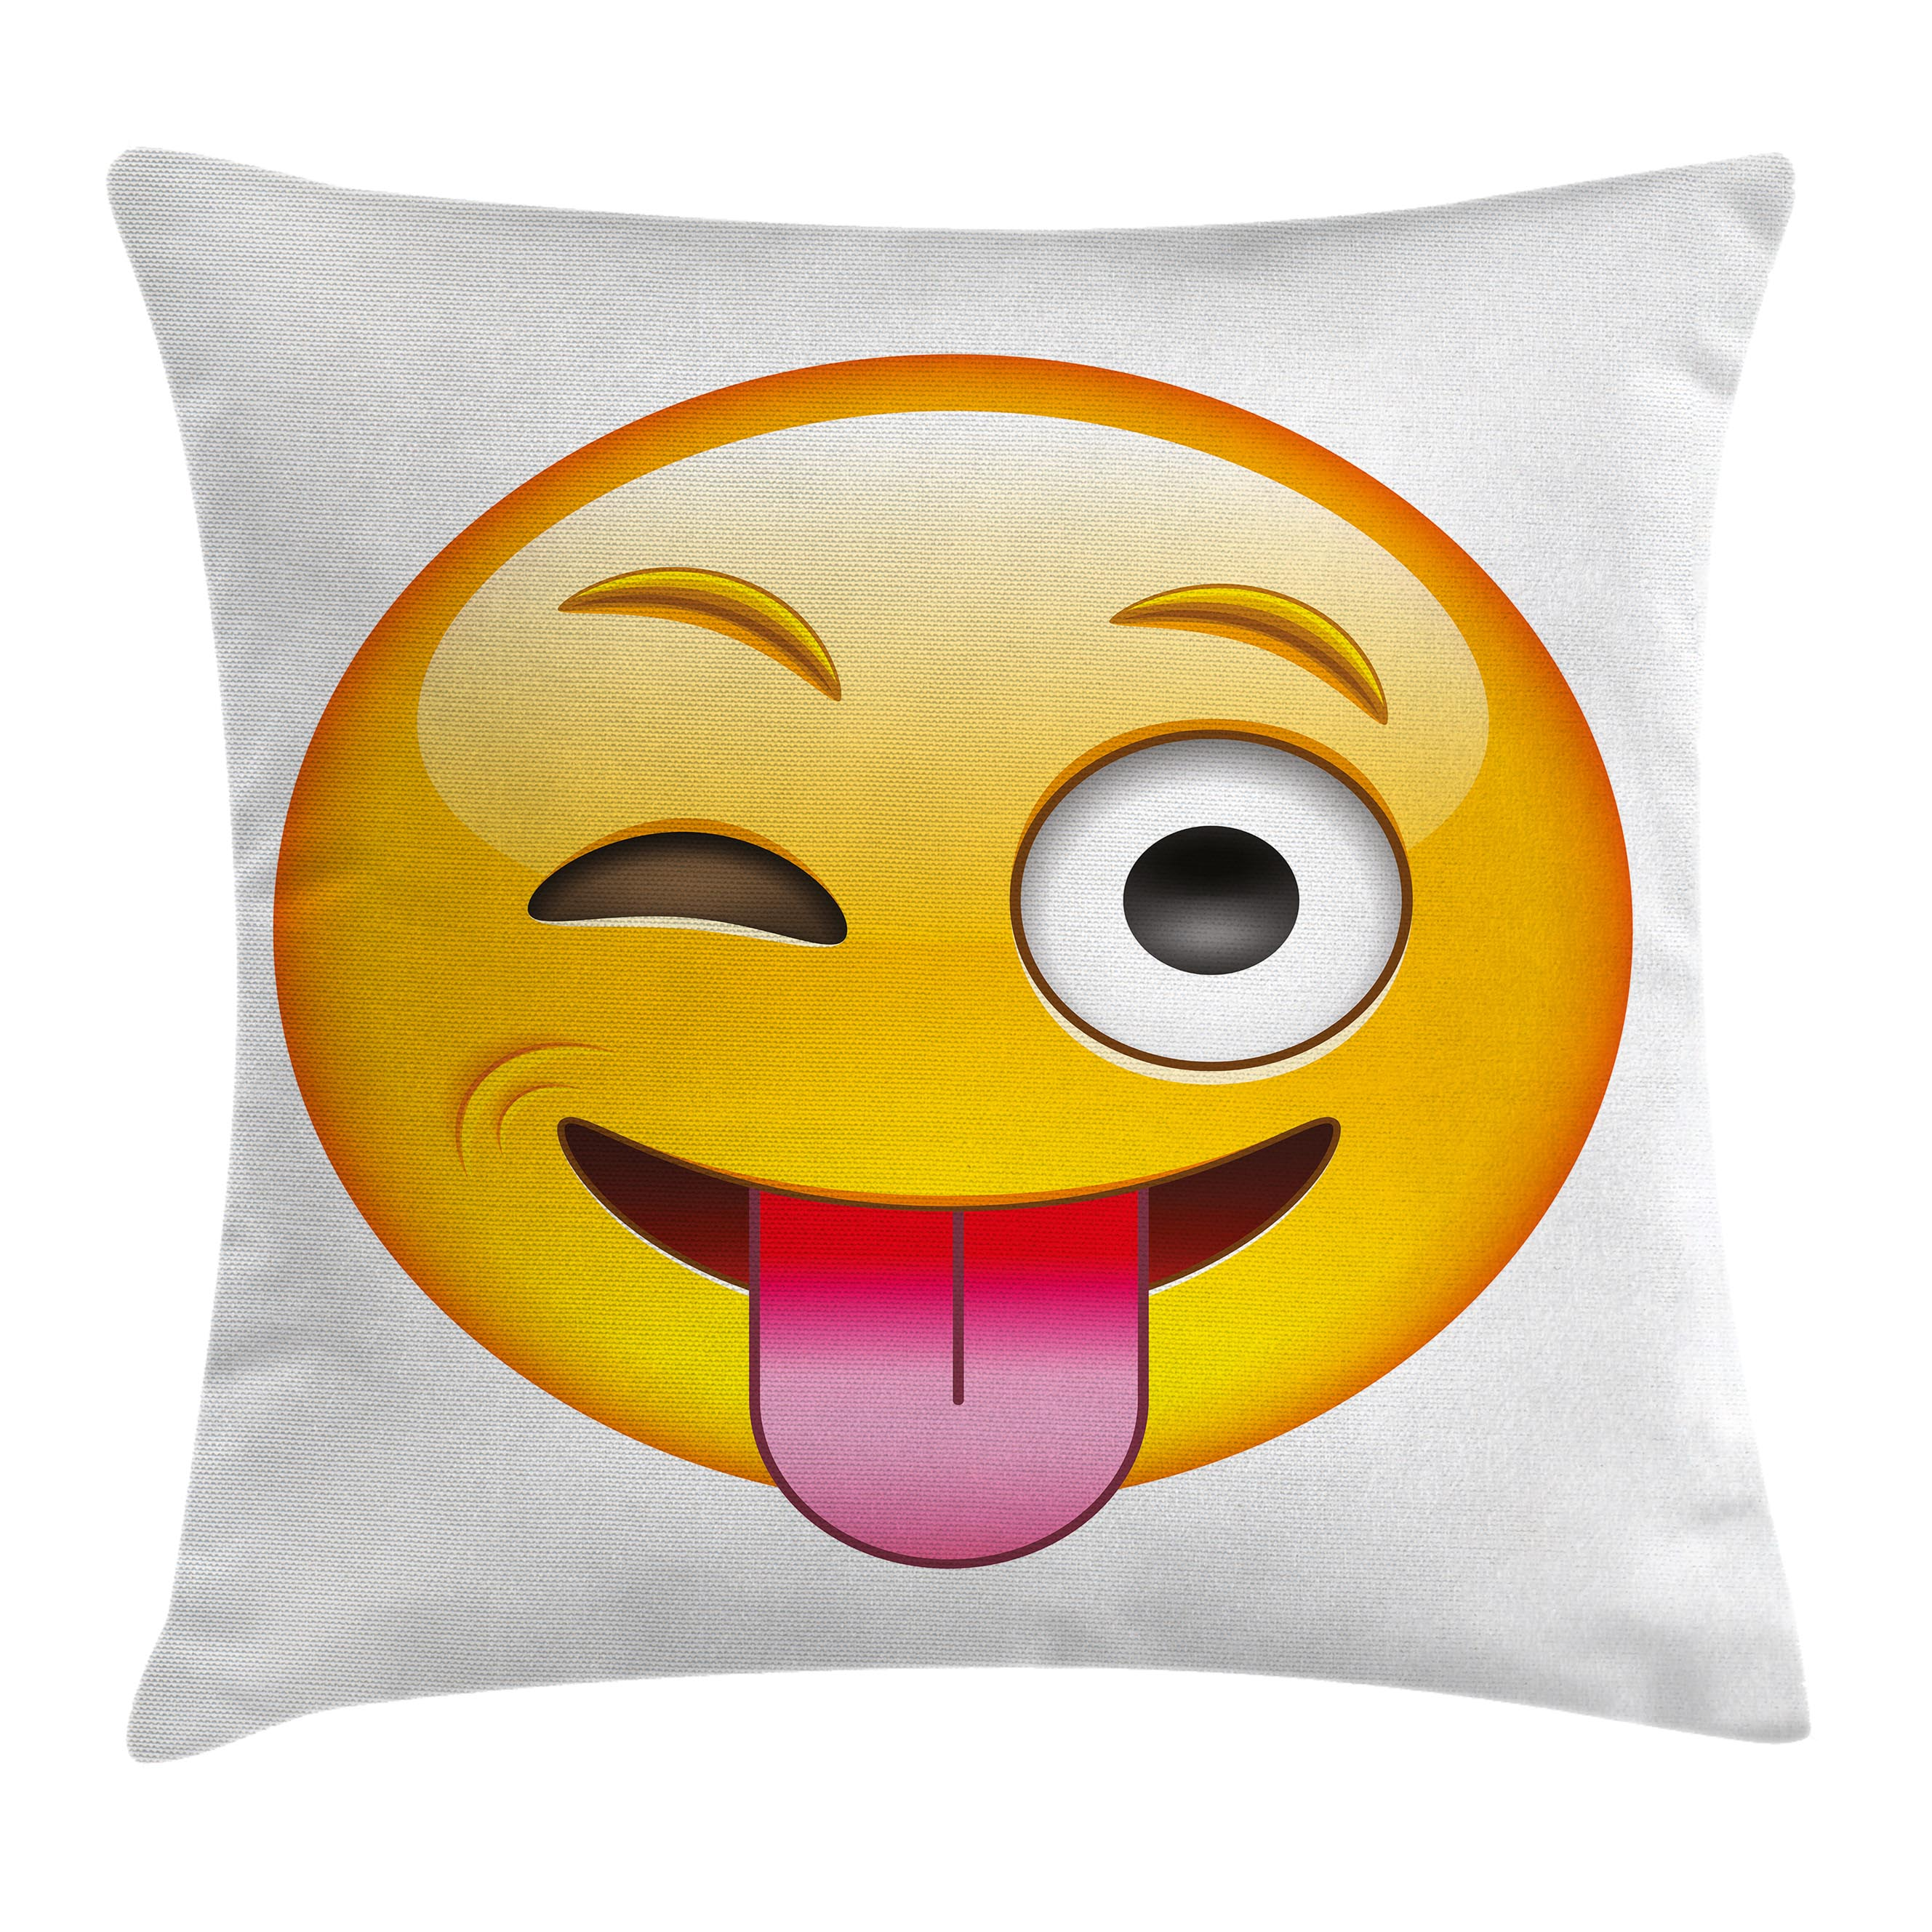 Emoji Throw Pillow Cushion Cover, Cartoon like Technologic Smiley Flirty Sarcastic Happy Face with Tongue Modern Print, Decorative Square Accent Pillow Case, 16 X 16 Inches, Yellow, by Ambesonne